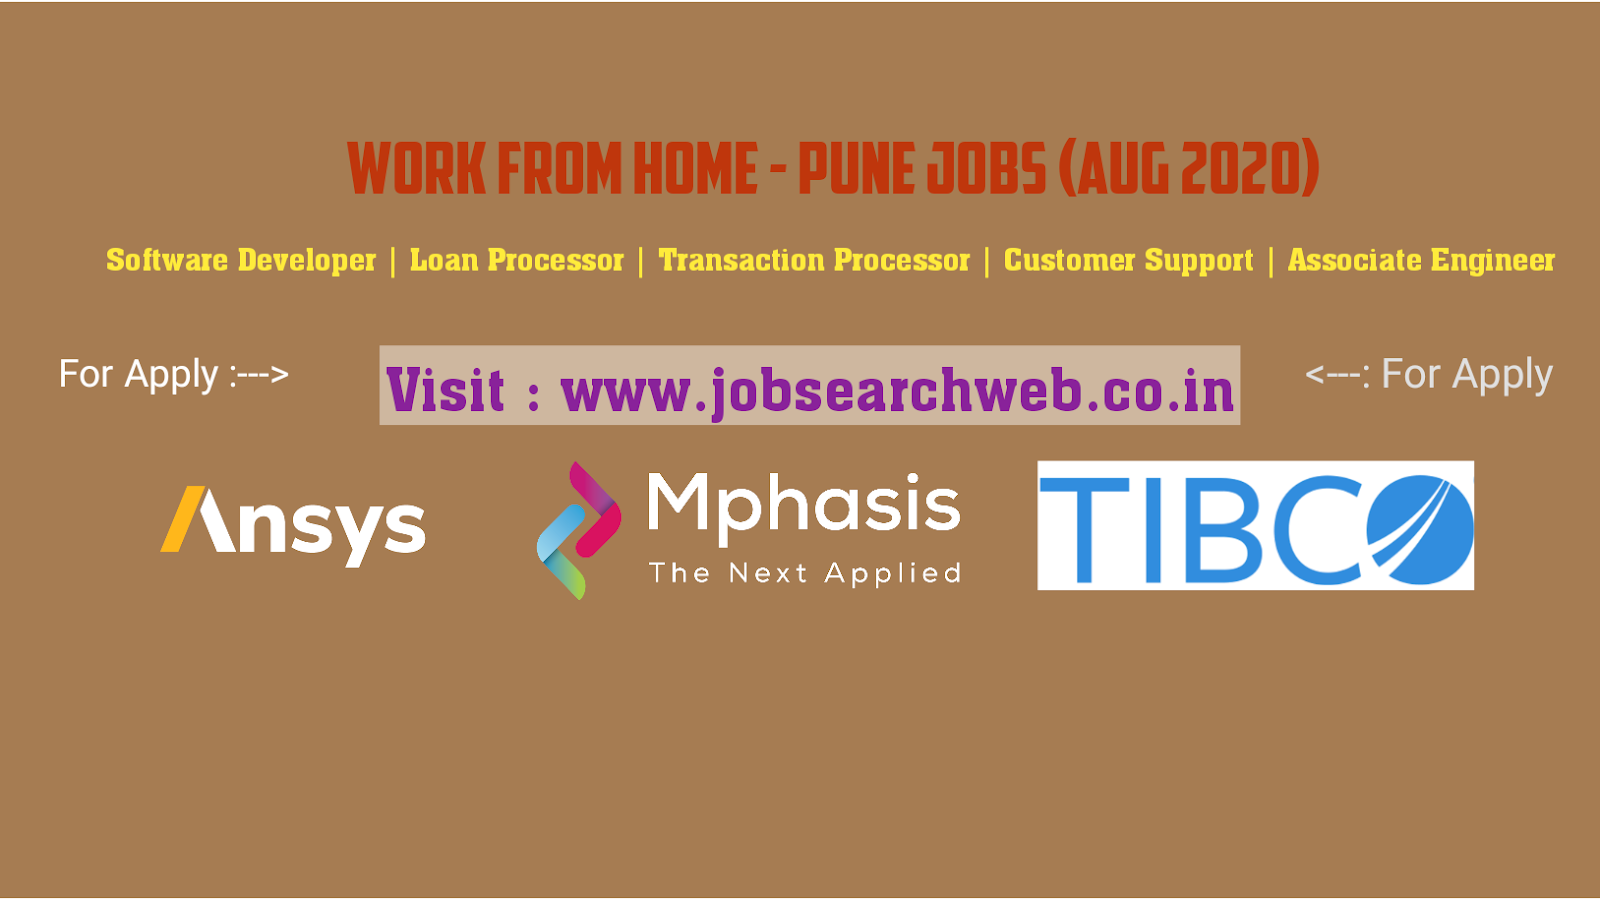 Work From Home Ansys Mphasis TIBCO is hiring Software